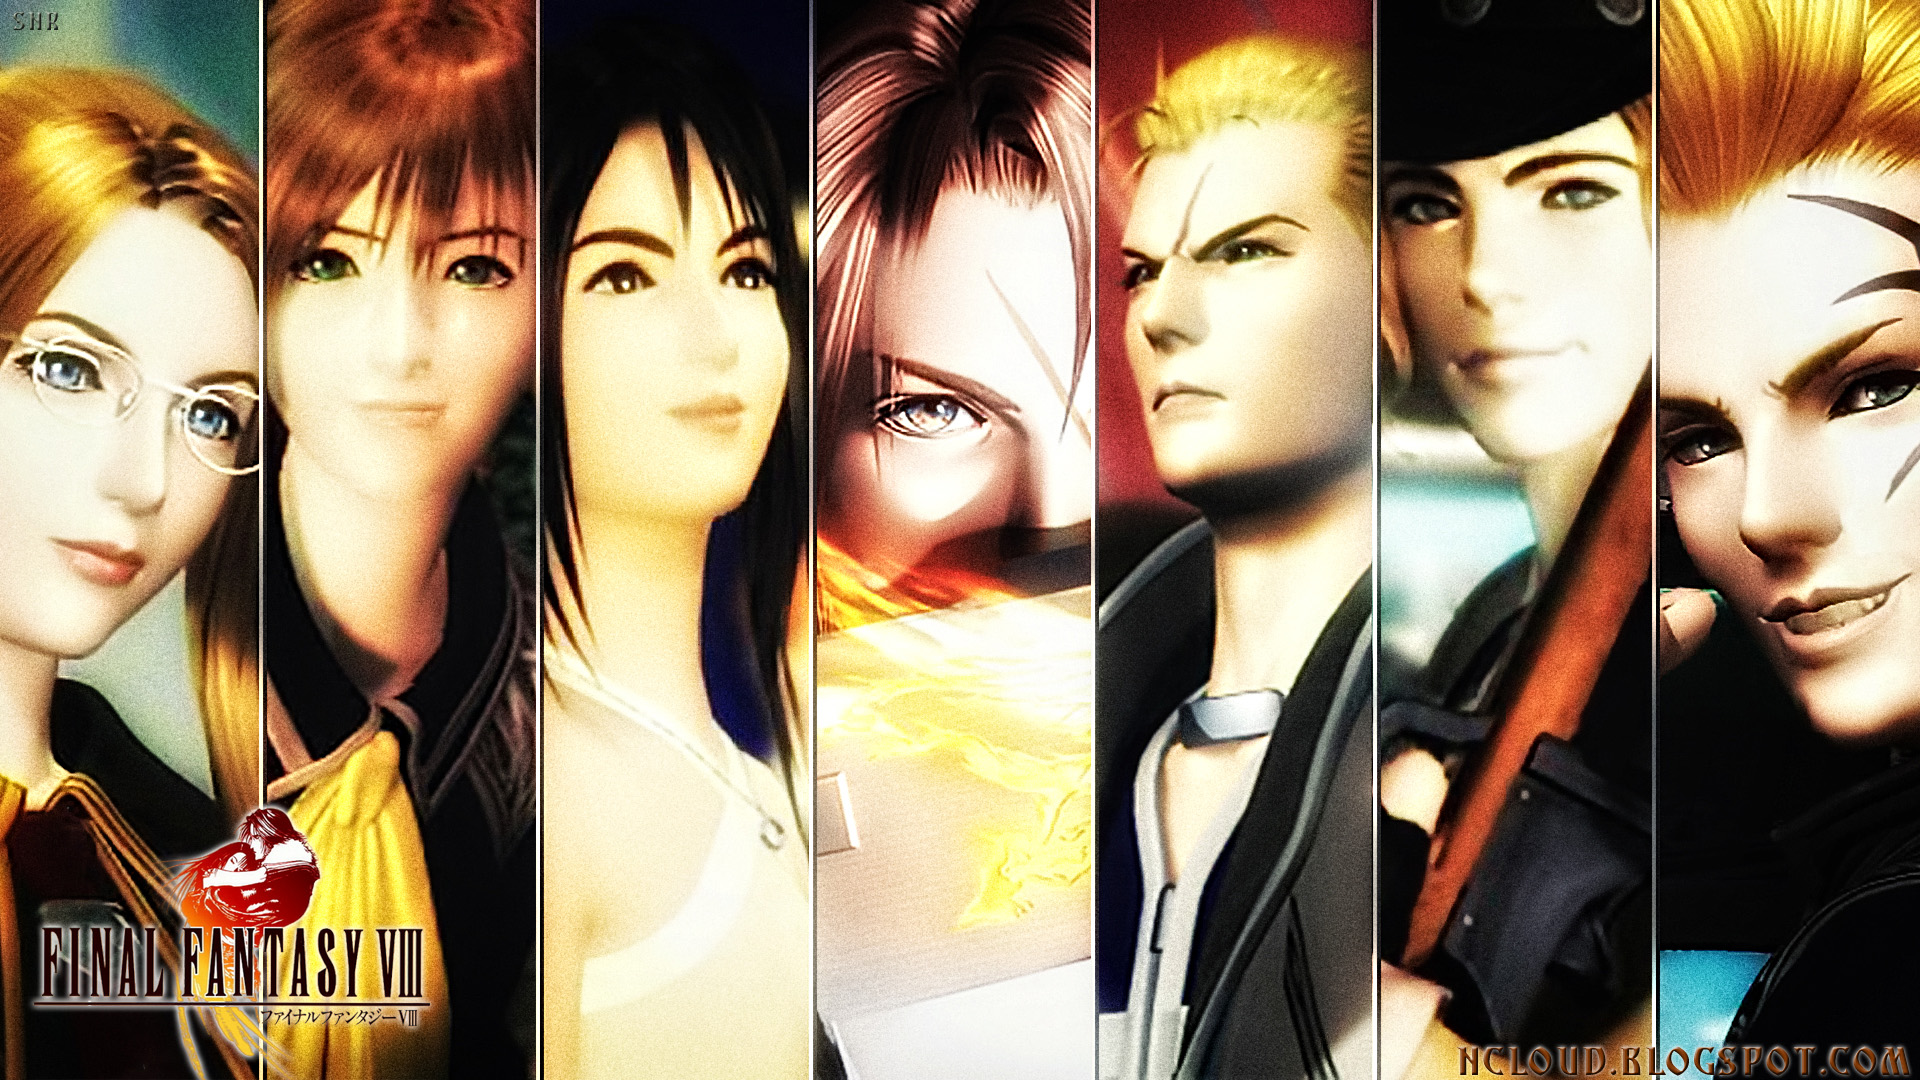 Games Movies Music Anime My Final Fantasy VIII HD Wallpaper 2 1920x1080